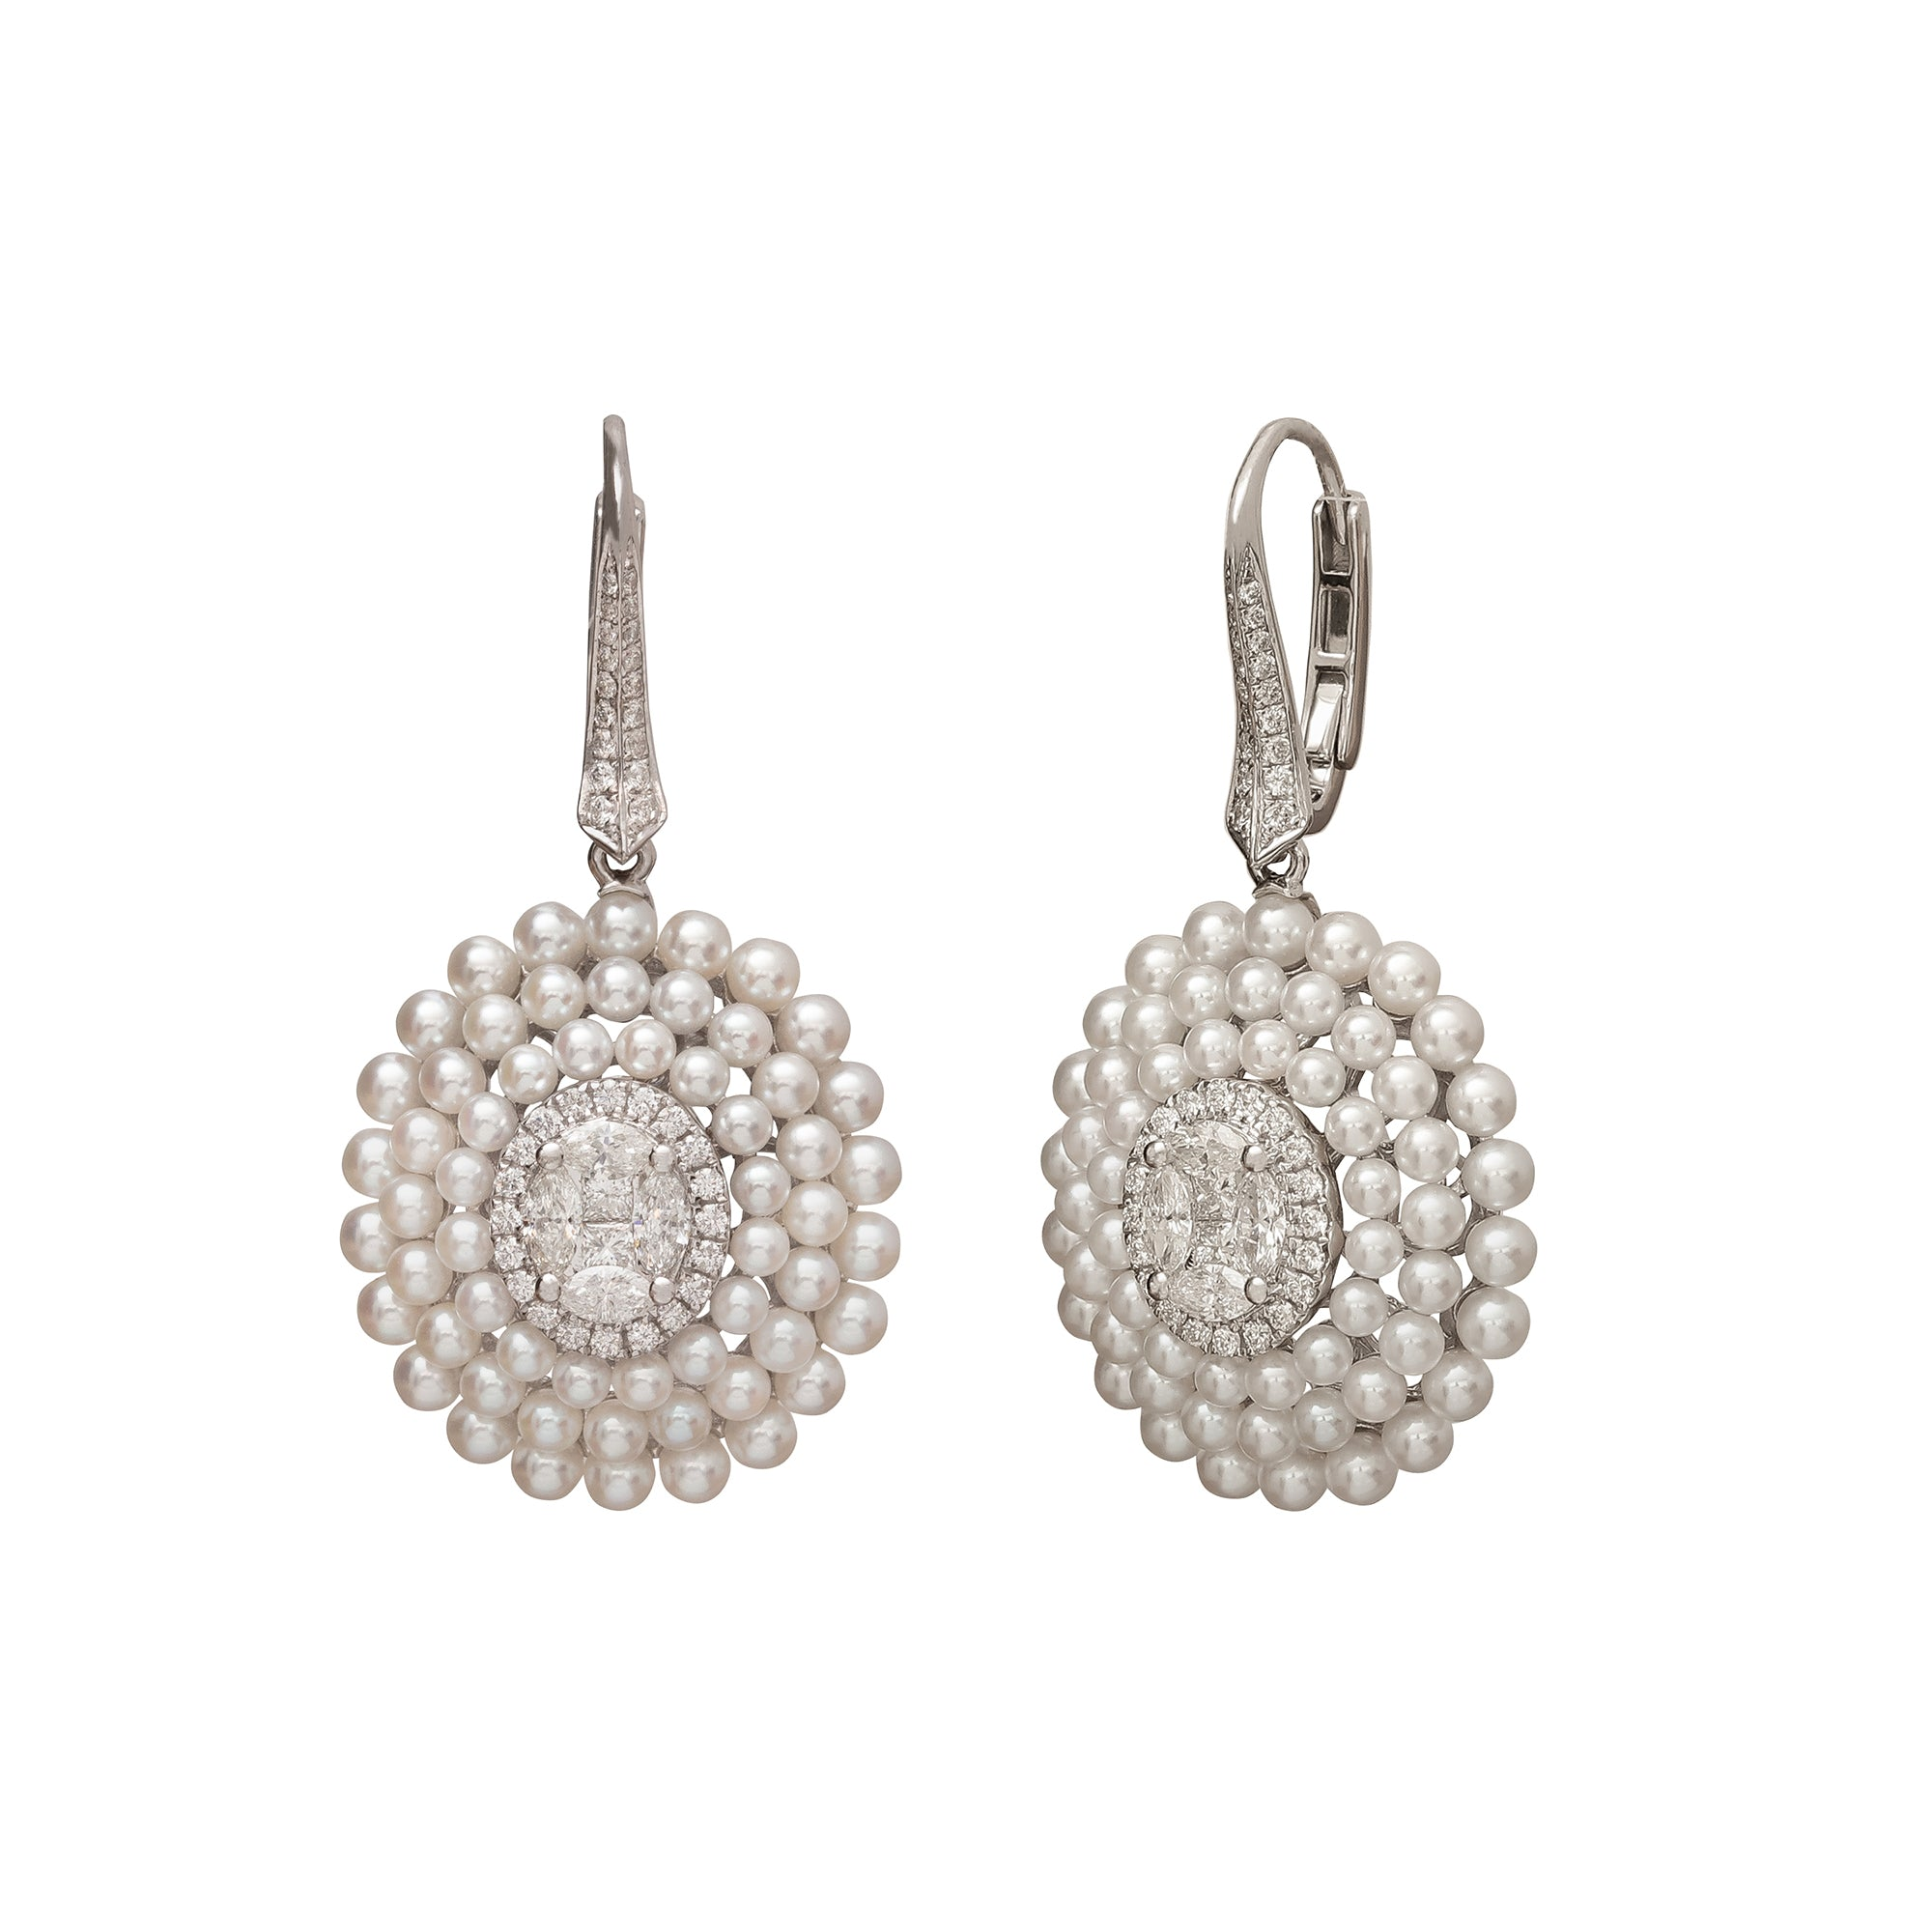 Diamond and Pearl Oval Drop Earrings - Legend Amrapali - Earrings | Broken English Jewelry